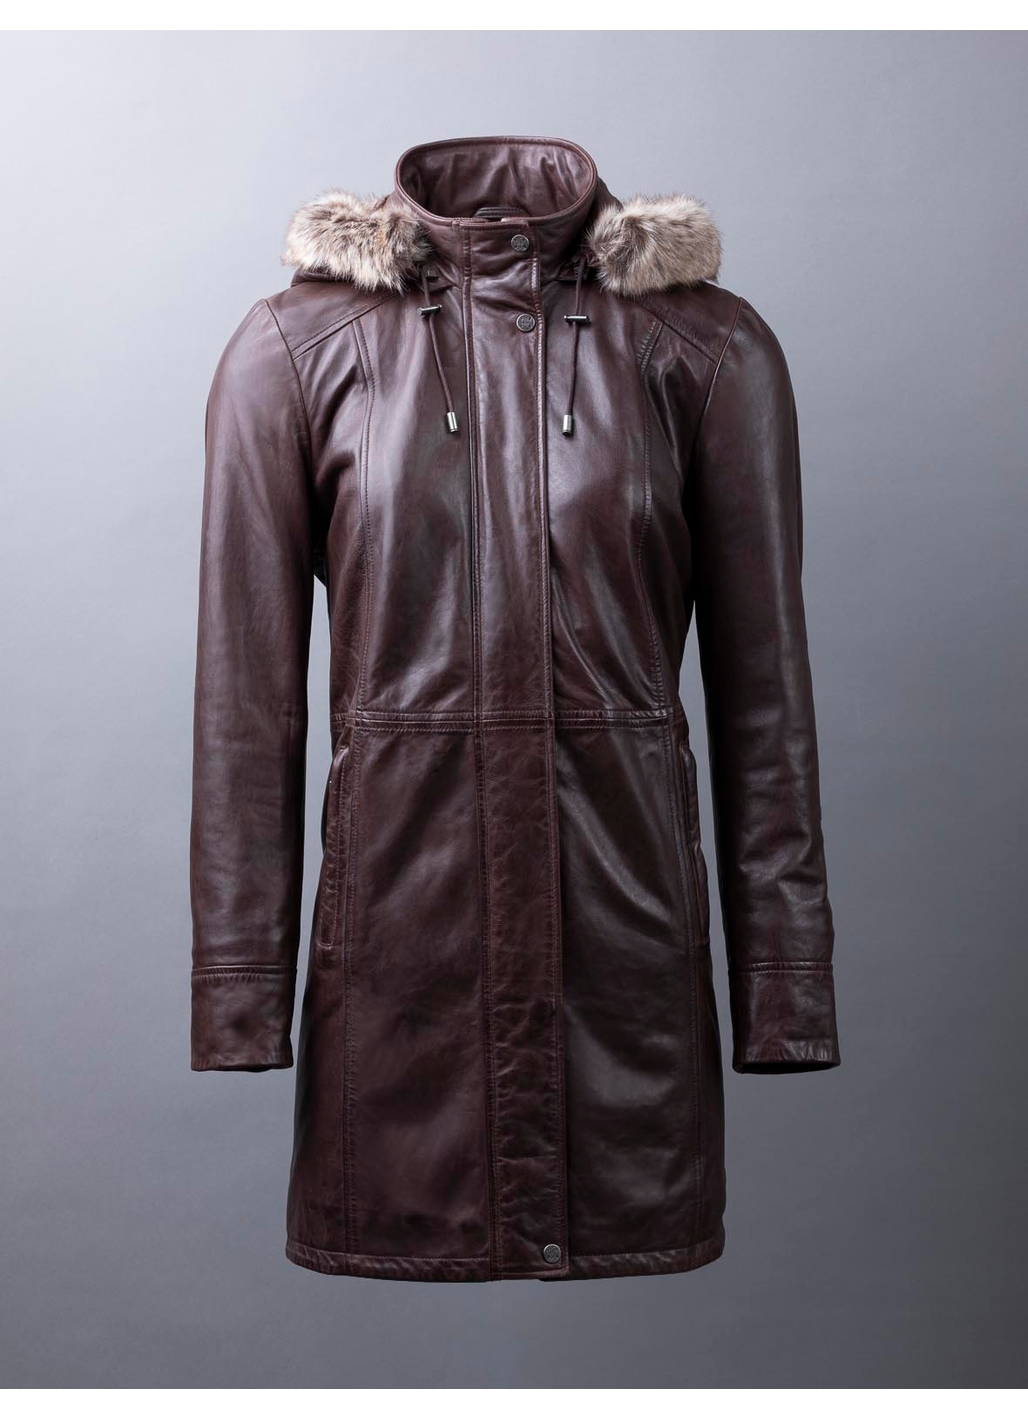 Ravensworth Long Leather Coat in Chocolate Brown